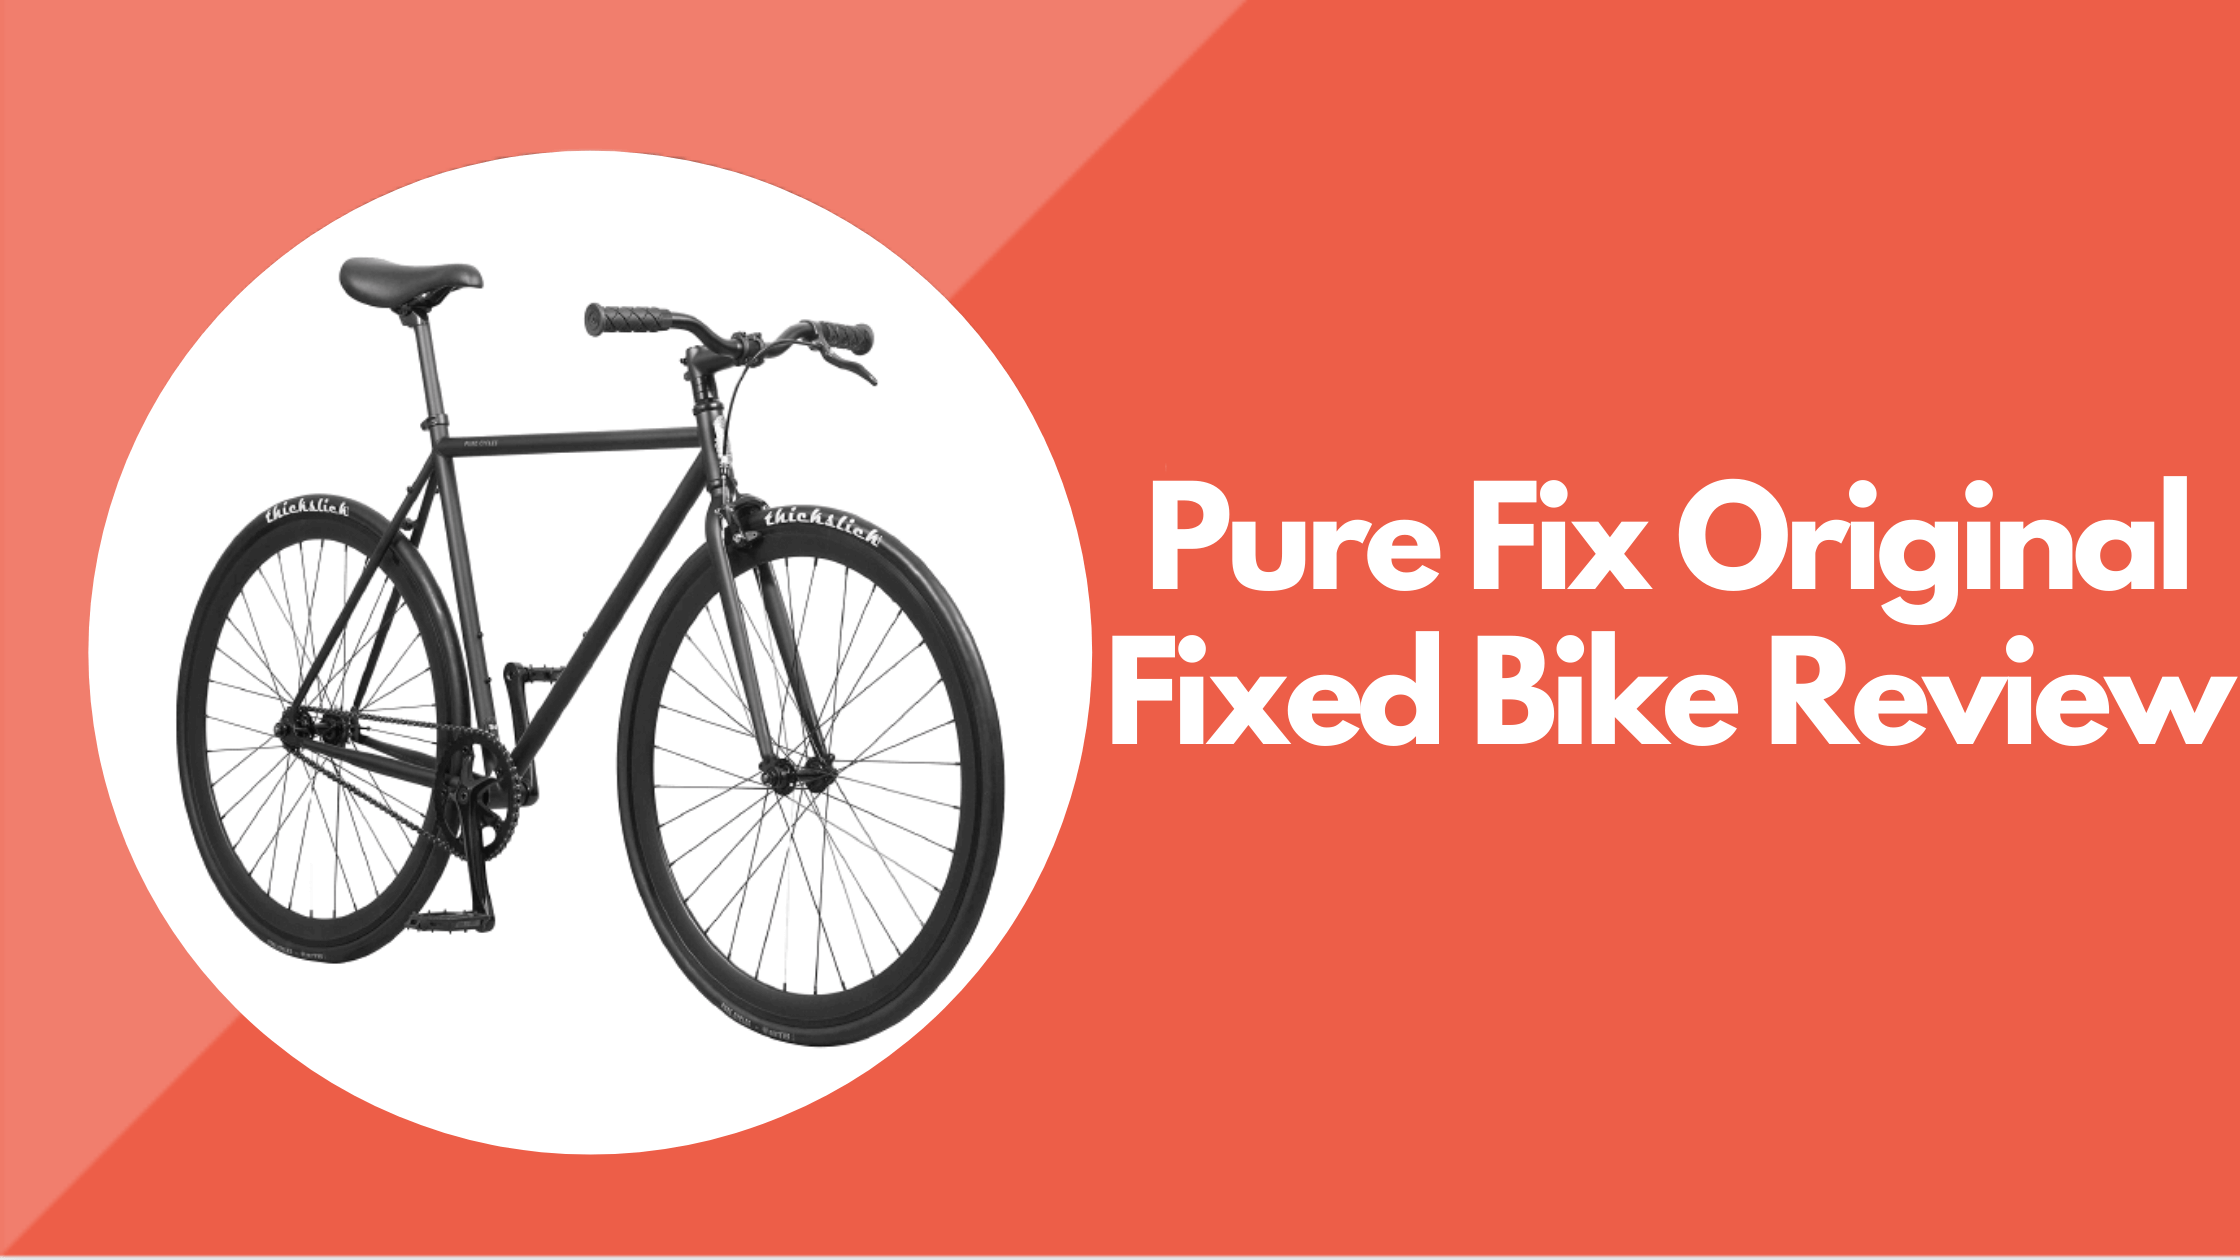 Pure Fix Original Fixed Bike Review